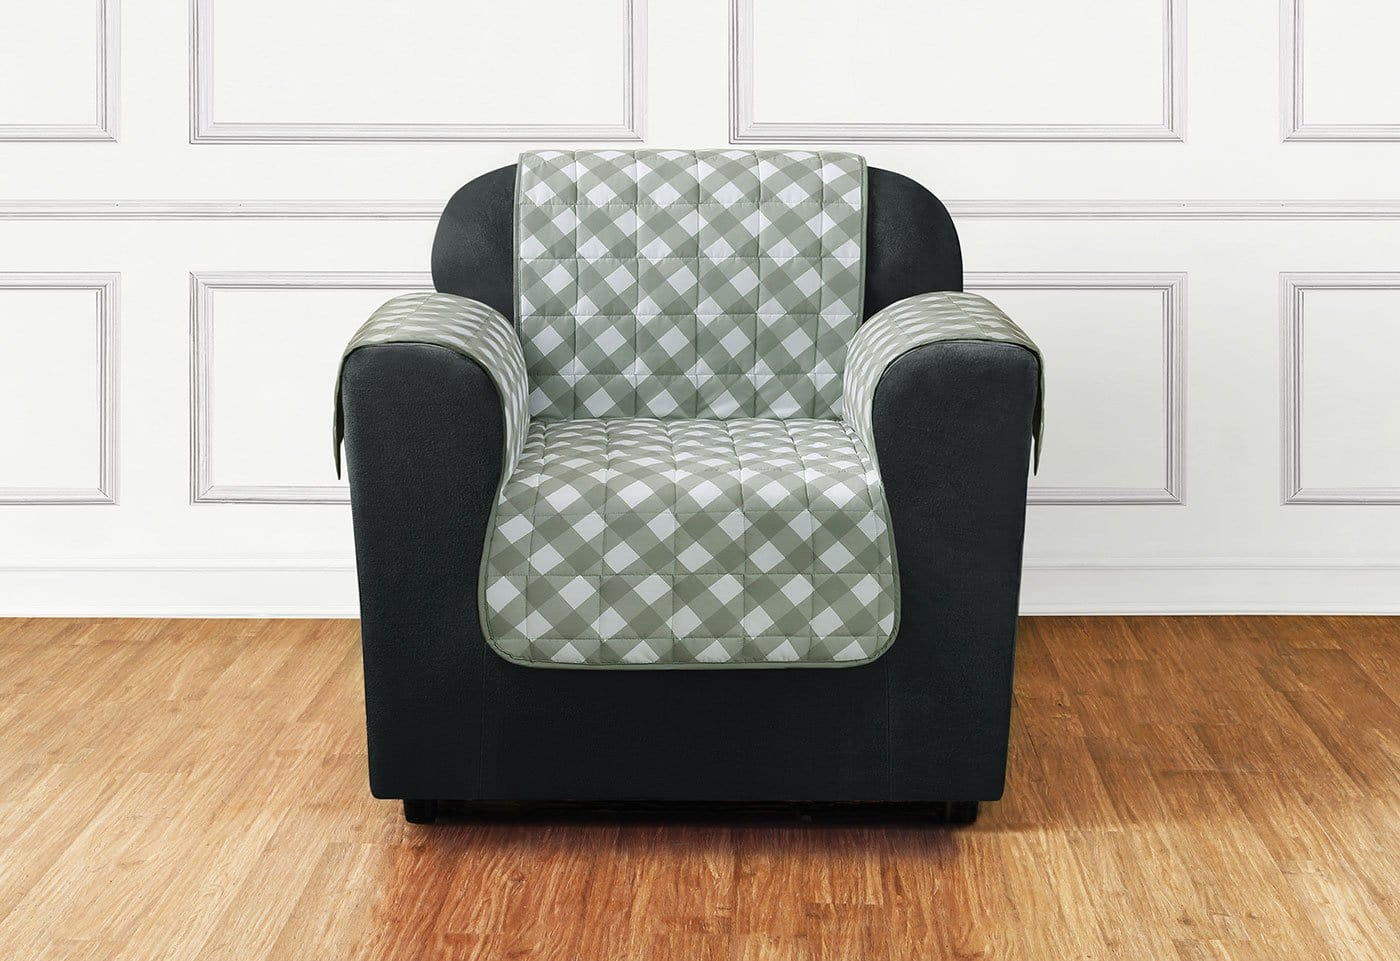 Furniture Flair Chair Furniture Cover 100% Polyester Pet Furniture Cover Machine Washable - Chair / Gingham Plaid